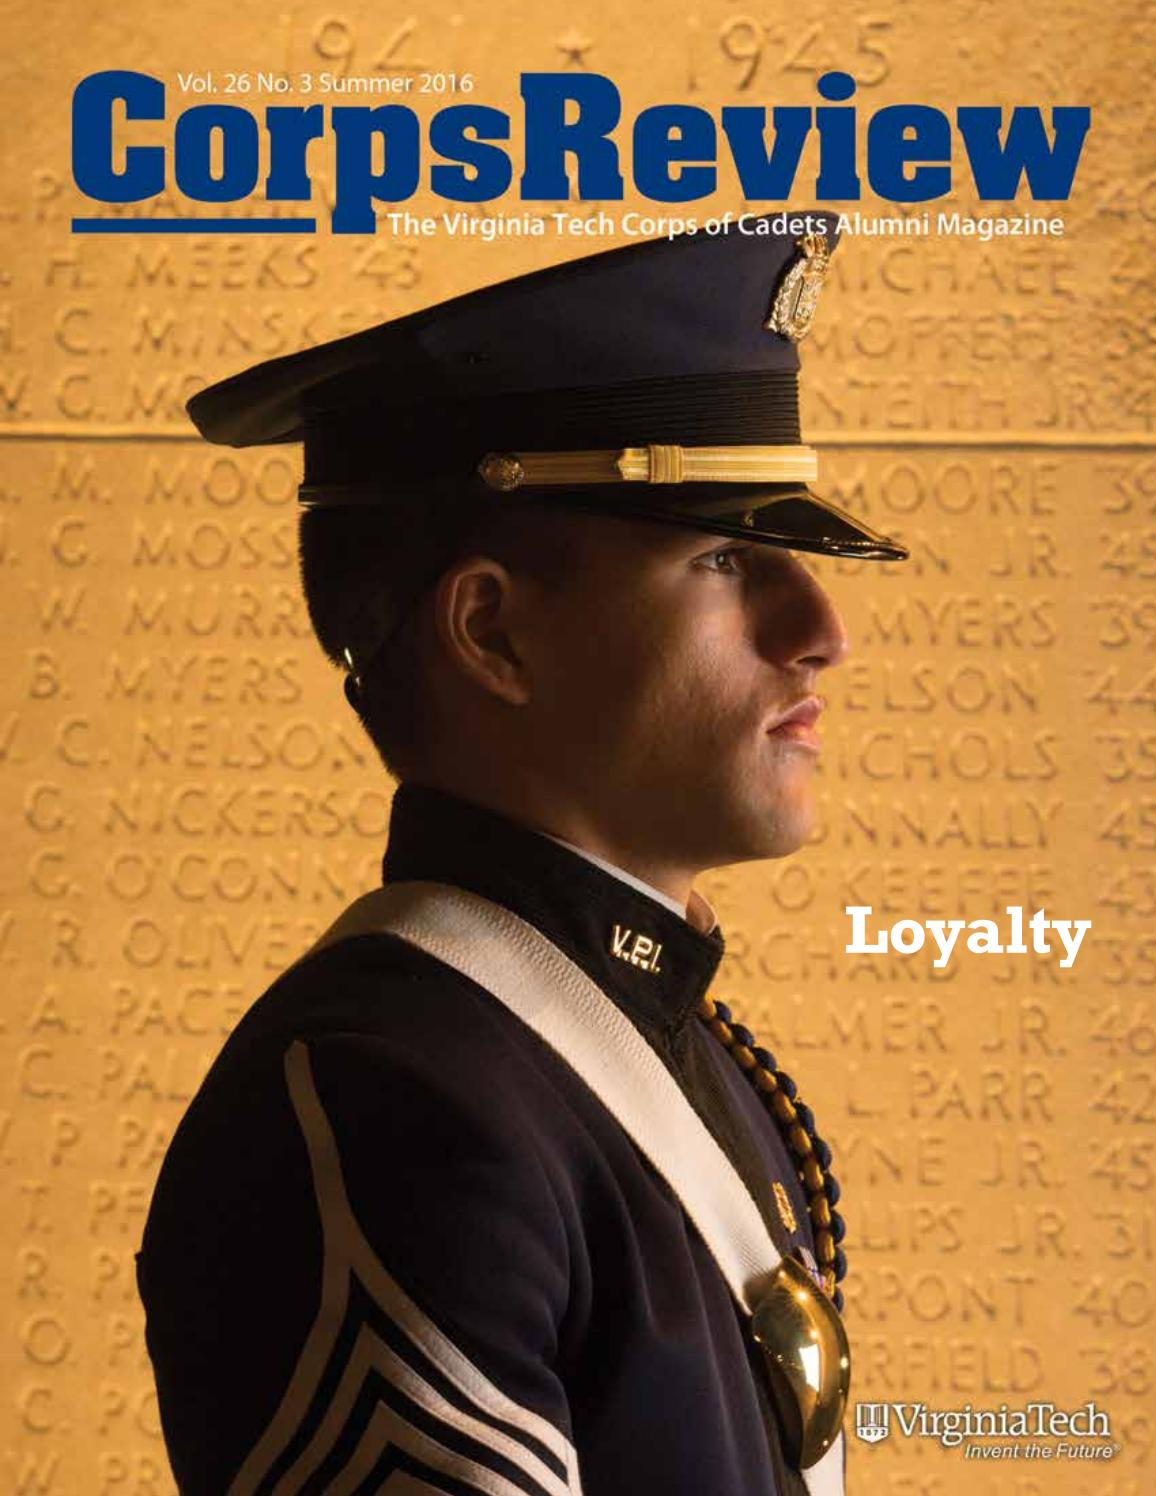 corps review summer 2016 by virginia tech corps of cadets alumni corps review summer 2016 by virginia tech corps of cadets alumni issuu